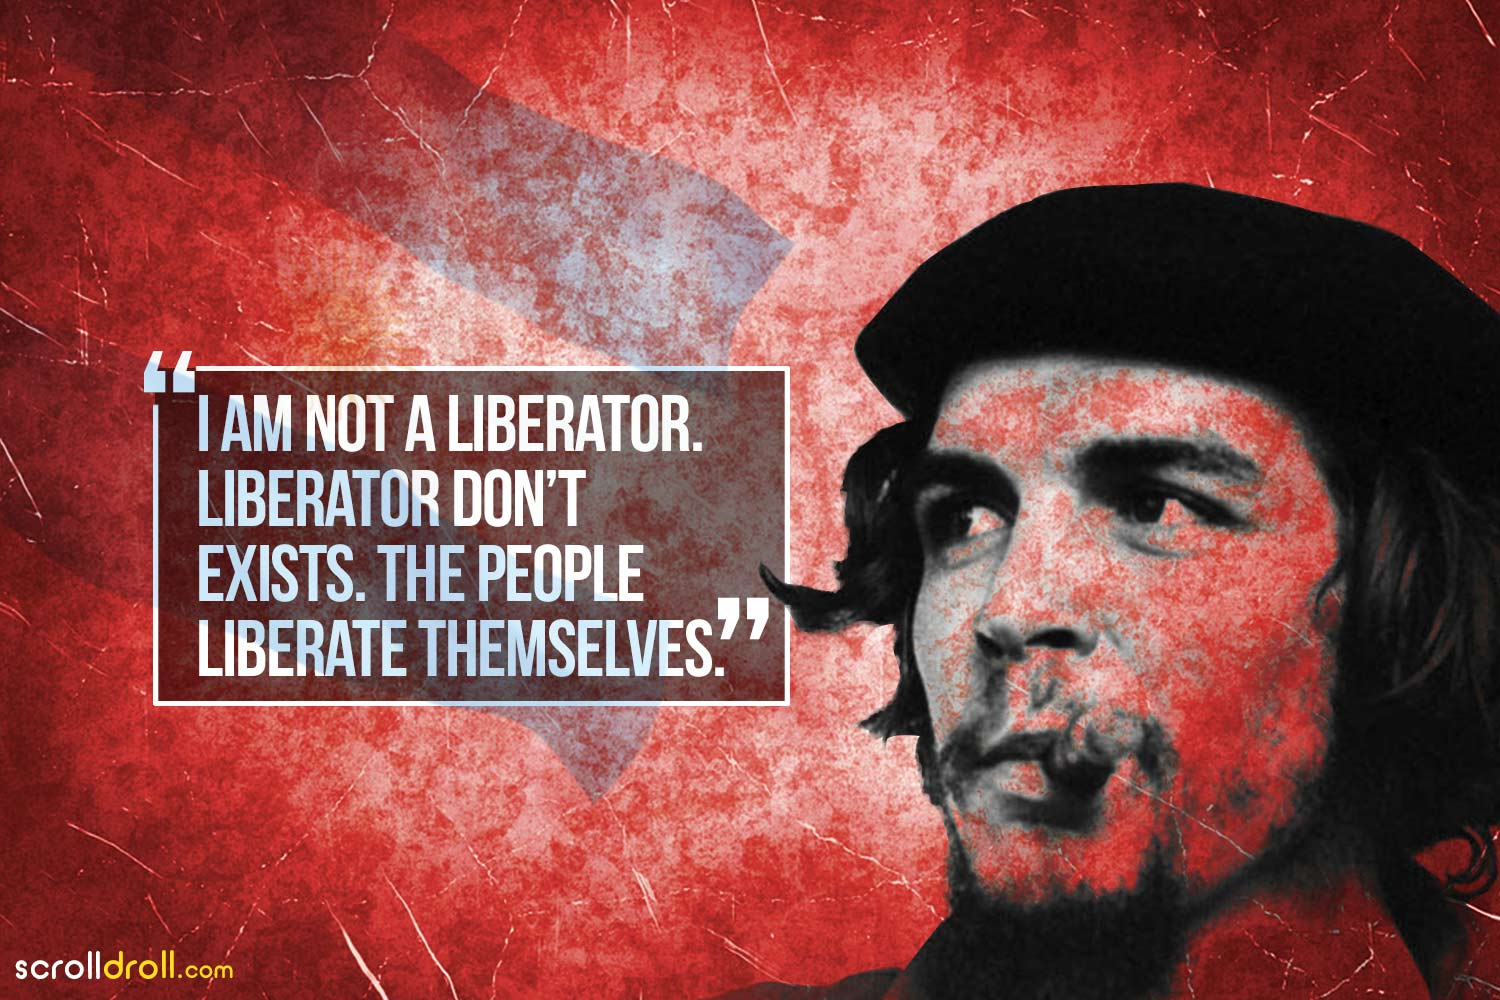 I am not a liberator, liberator don't exist. the people liberate themselves-Che Guevara